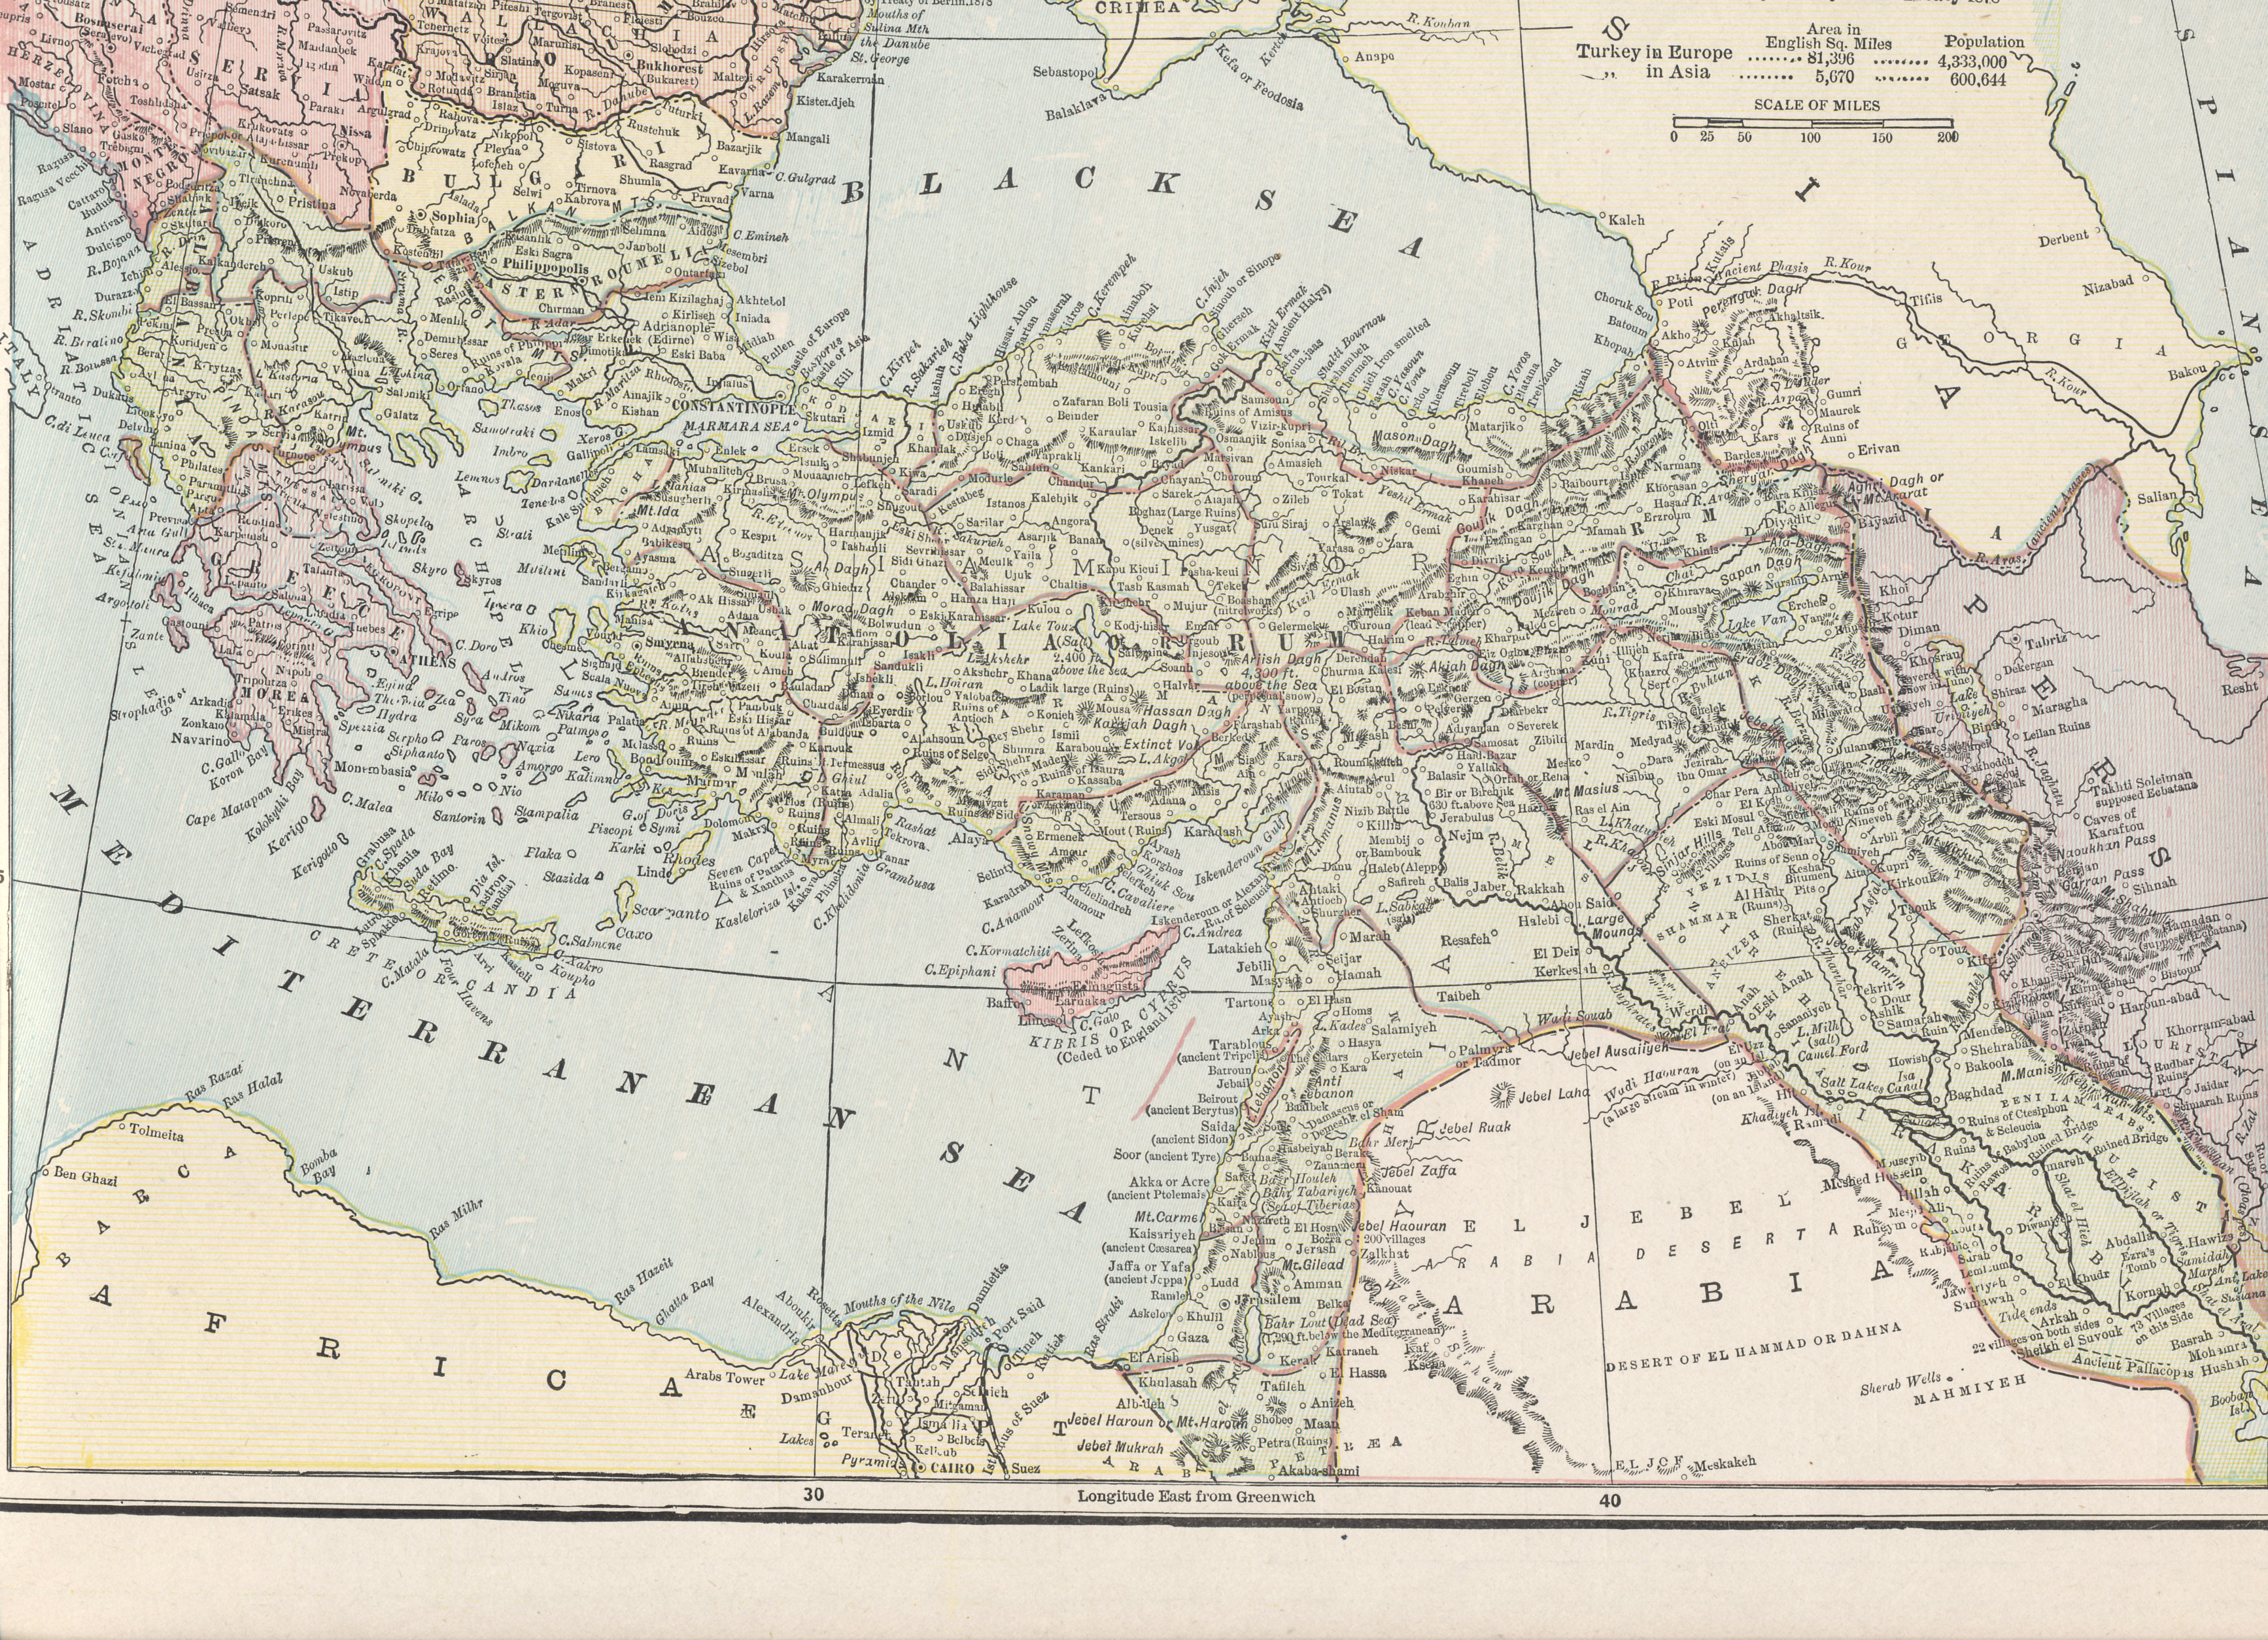 The Turkish (or Ottoman) Empire, from Cram's 1896 Railway Map of the Turkish Empire.